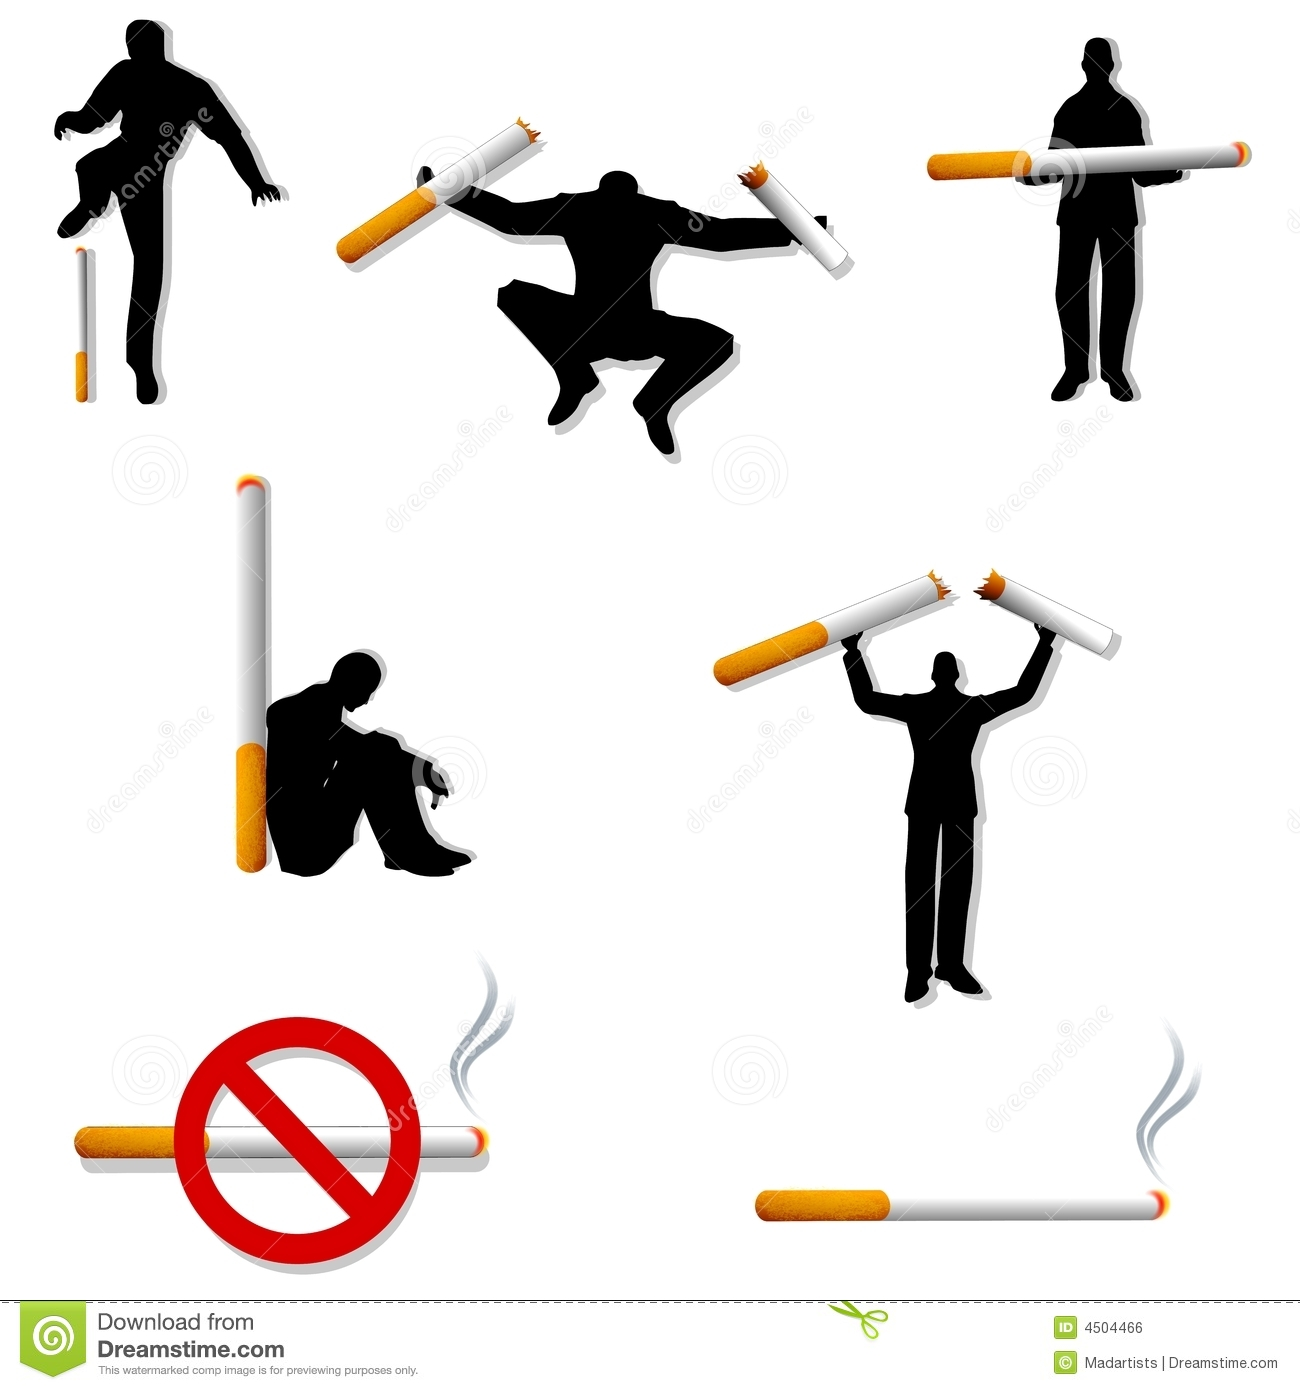 Quit Smoking People Cigarettes Royalty Free Stock Image - Image ...